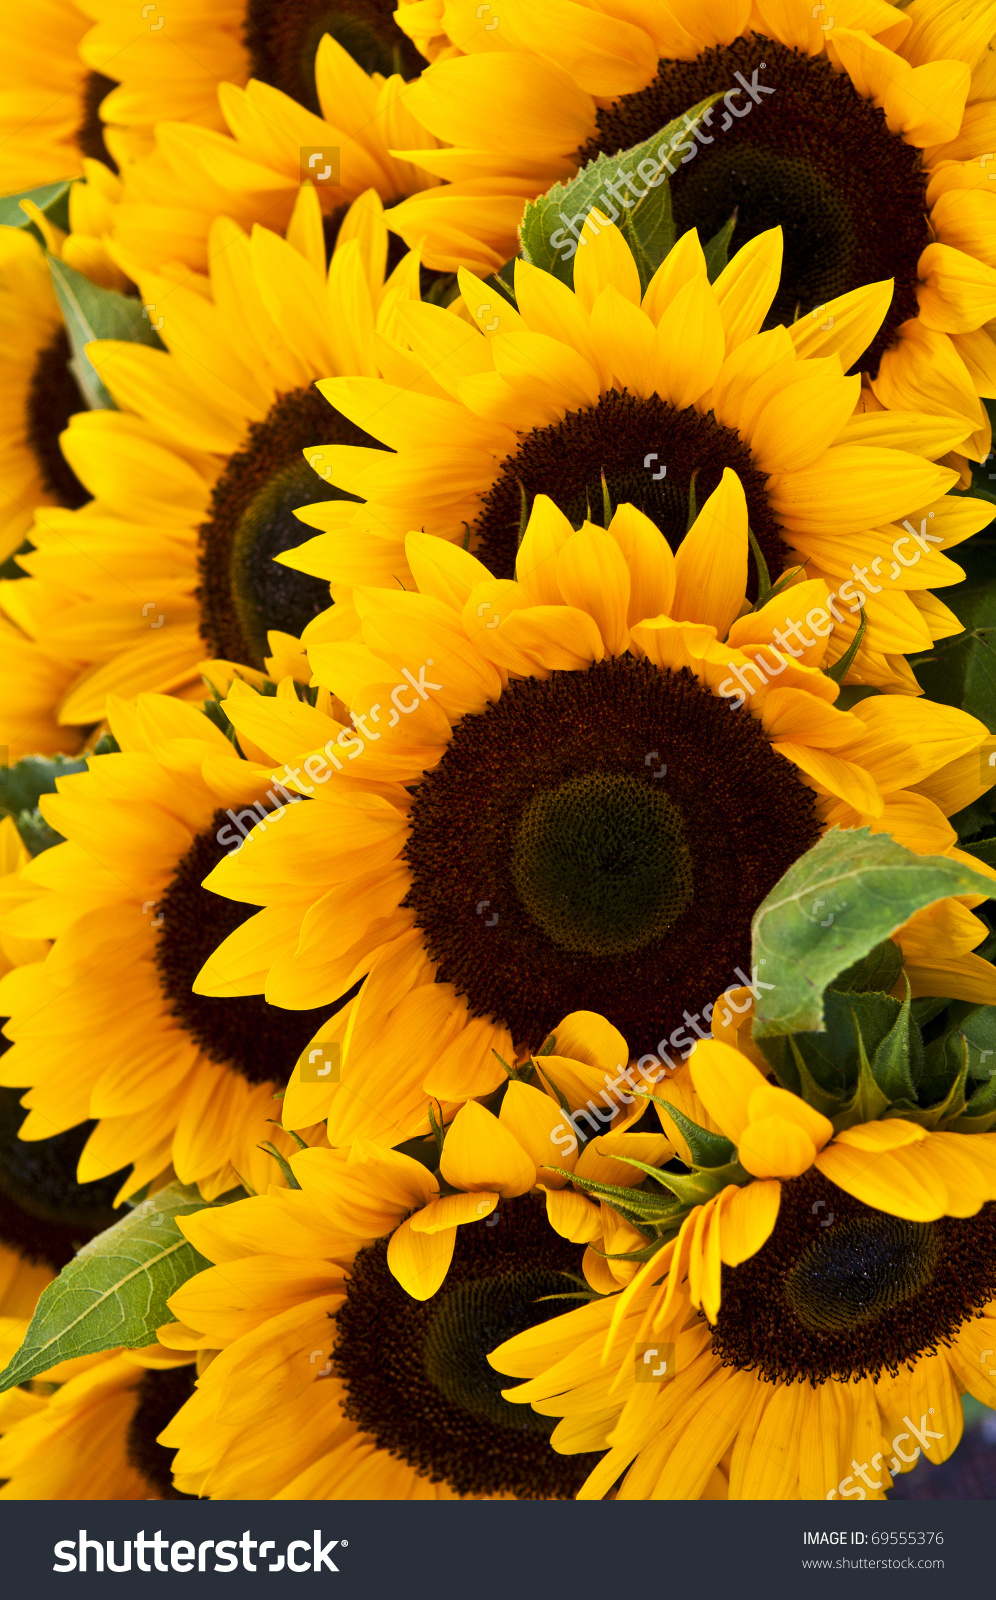 Sunflower Background Stock Photo 69555376 - Shutterstock